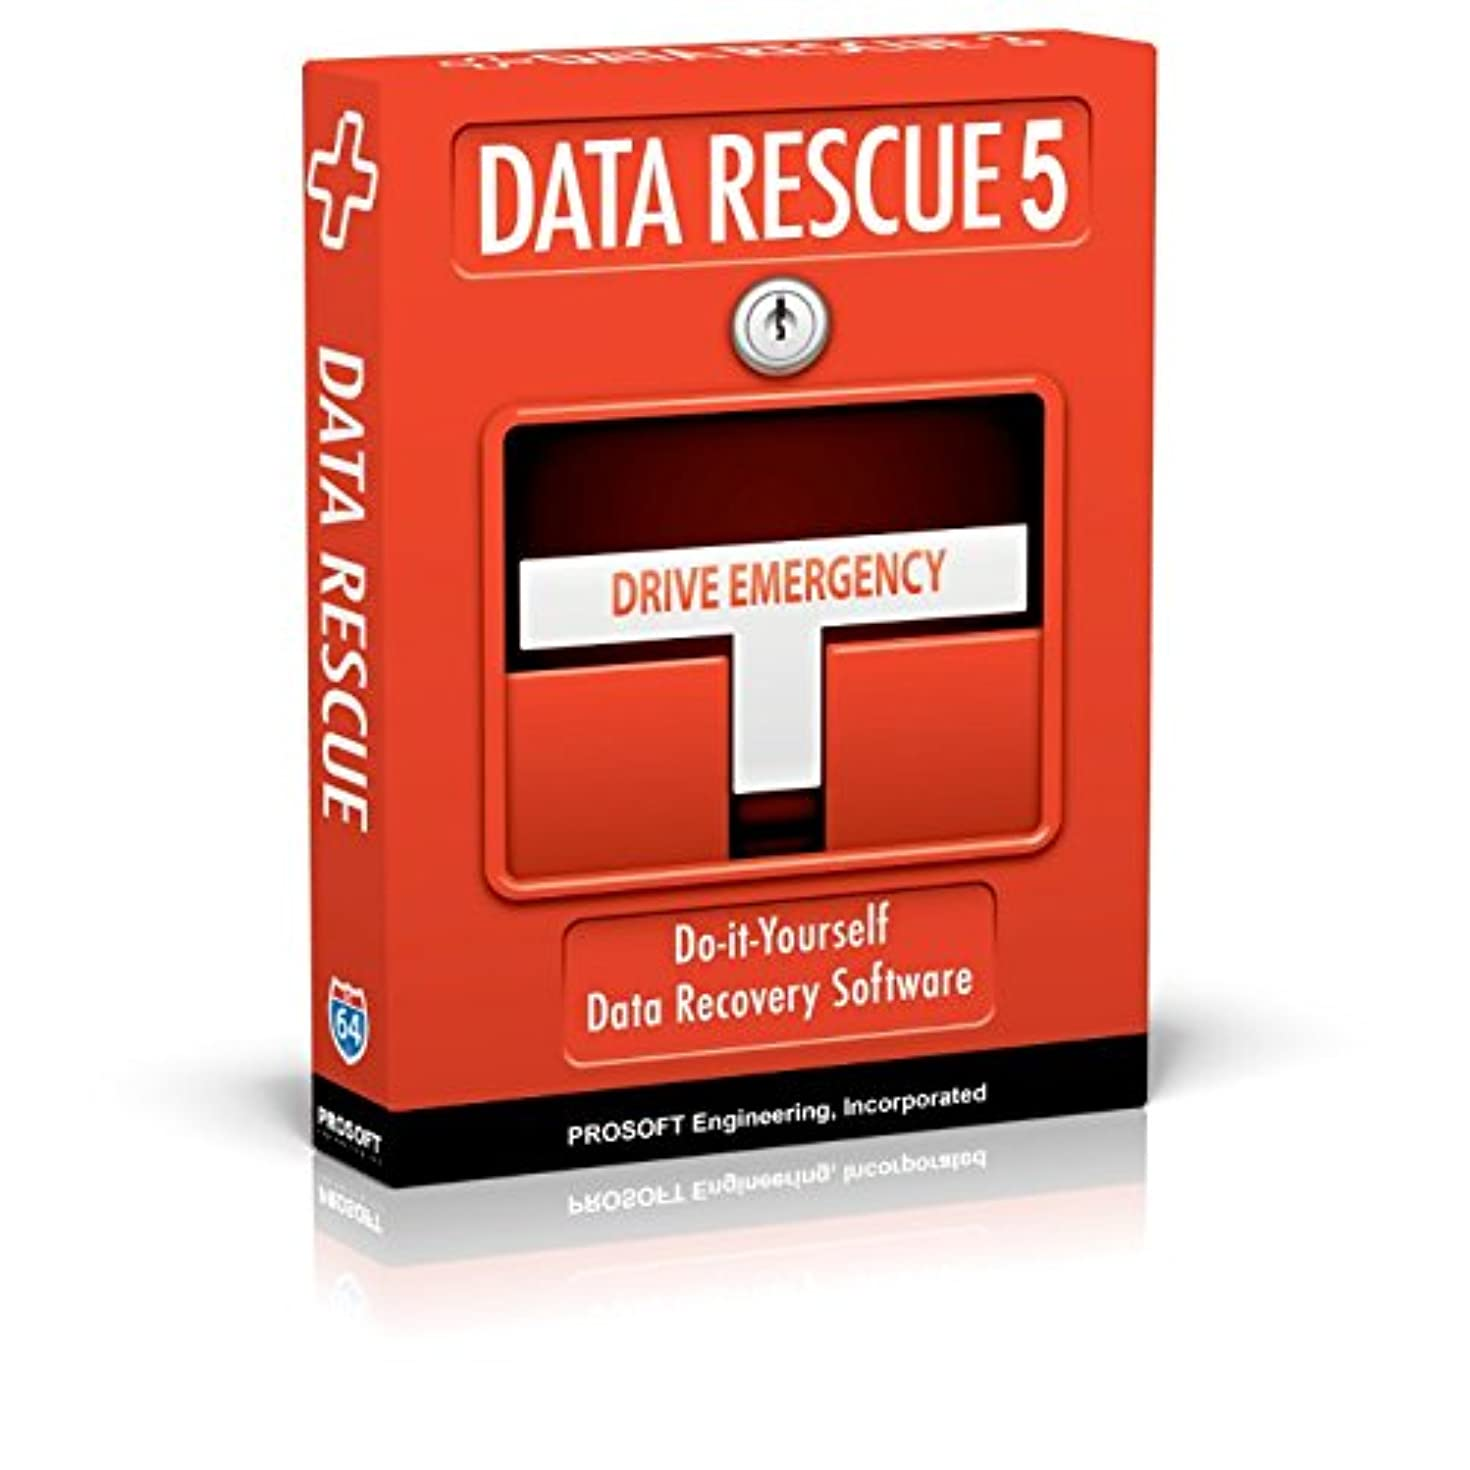 Data Rescue 5 | Mac | File Recovery Software | macOS 10.10 or Later | Unlimited Recoveries [up to 5 different devices] | Delivered on USB Thumb Drive | Older Versions Available for 10.9.5 and Under